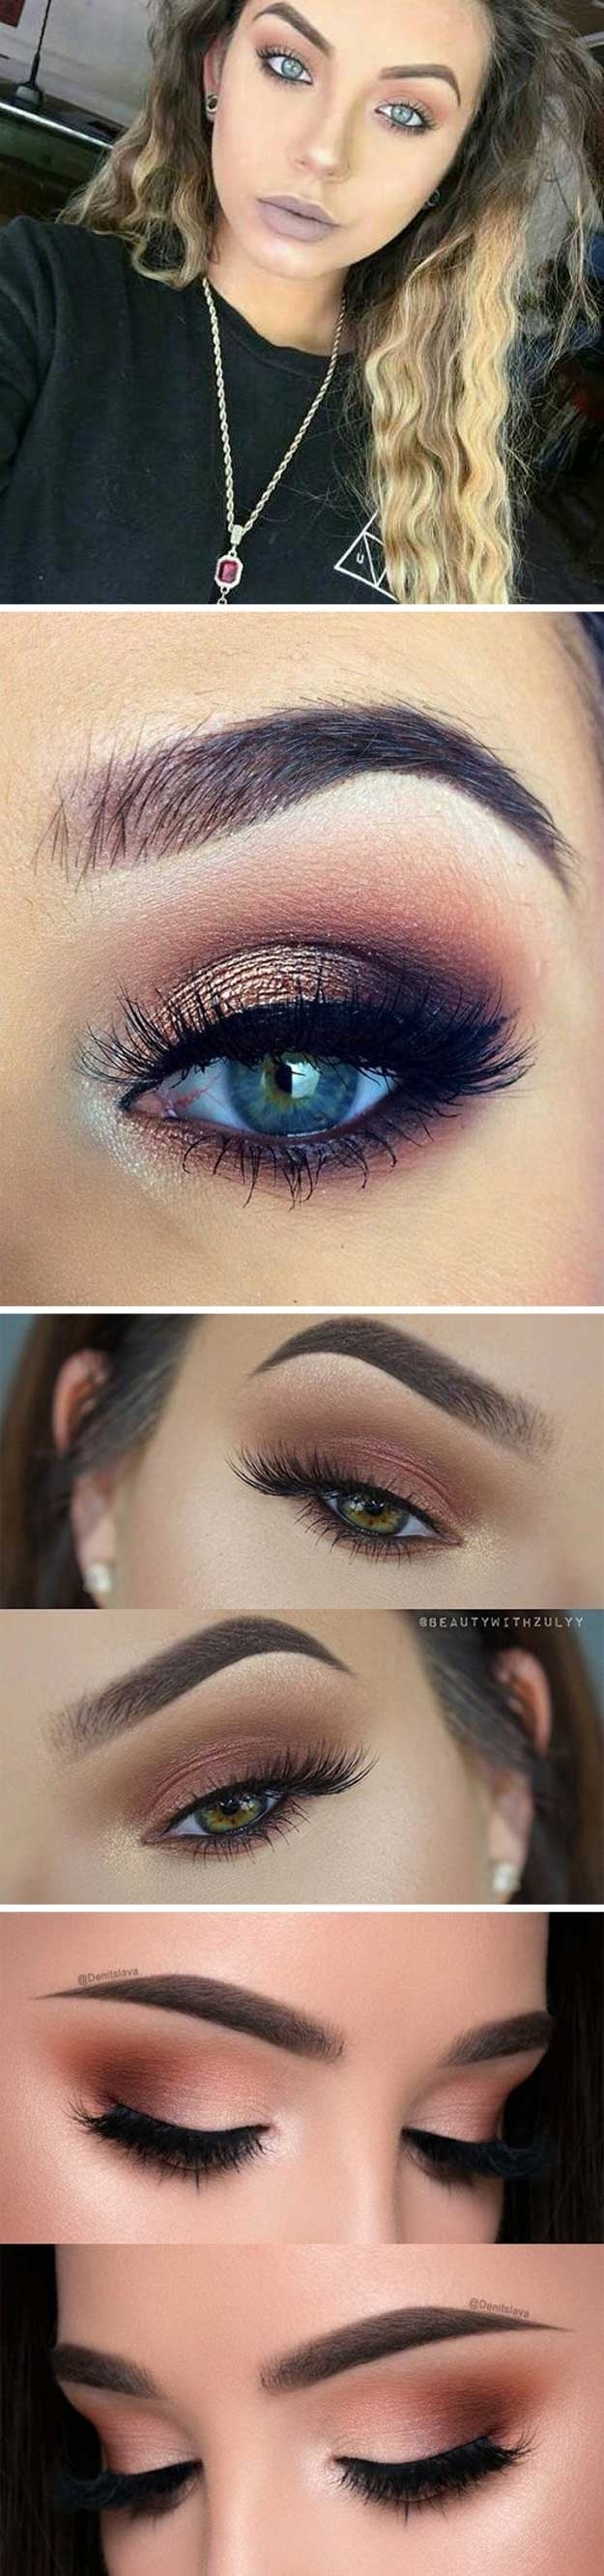 35 Wedding Makeup For Blue Eyes - The Goddess with regard to How To Do Makeup For Blue Eyes And Dark Brown Hair